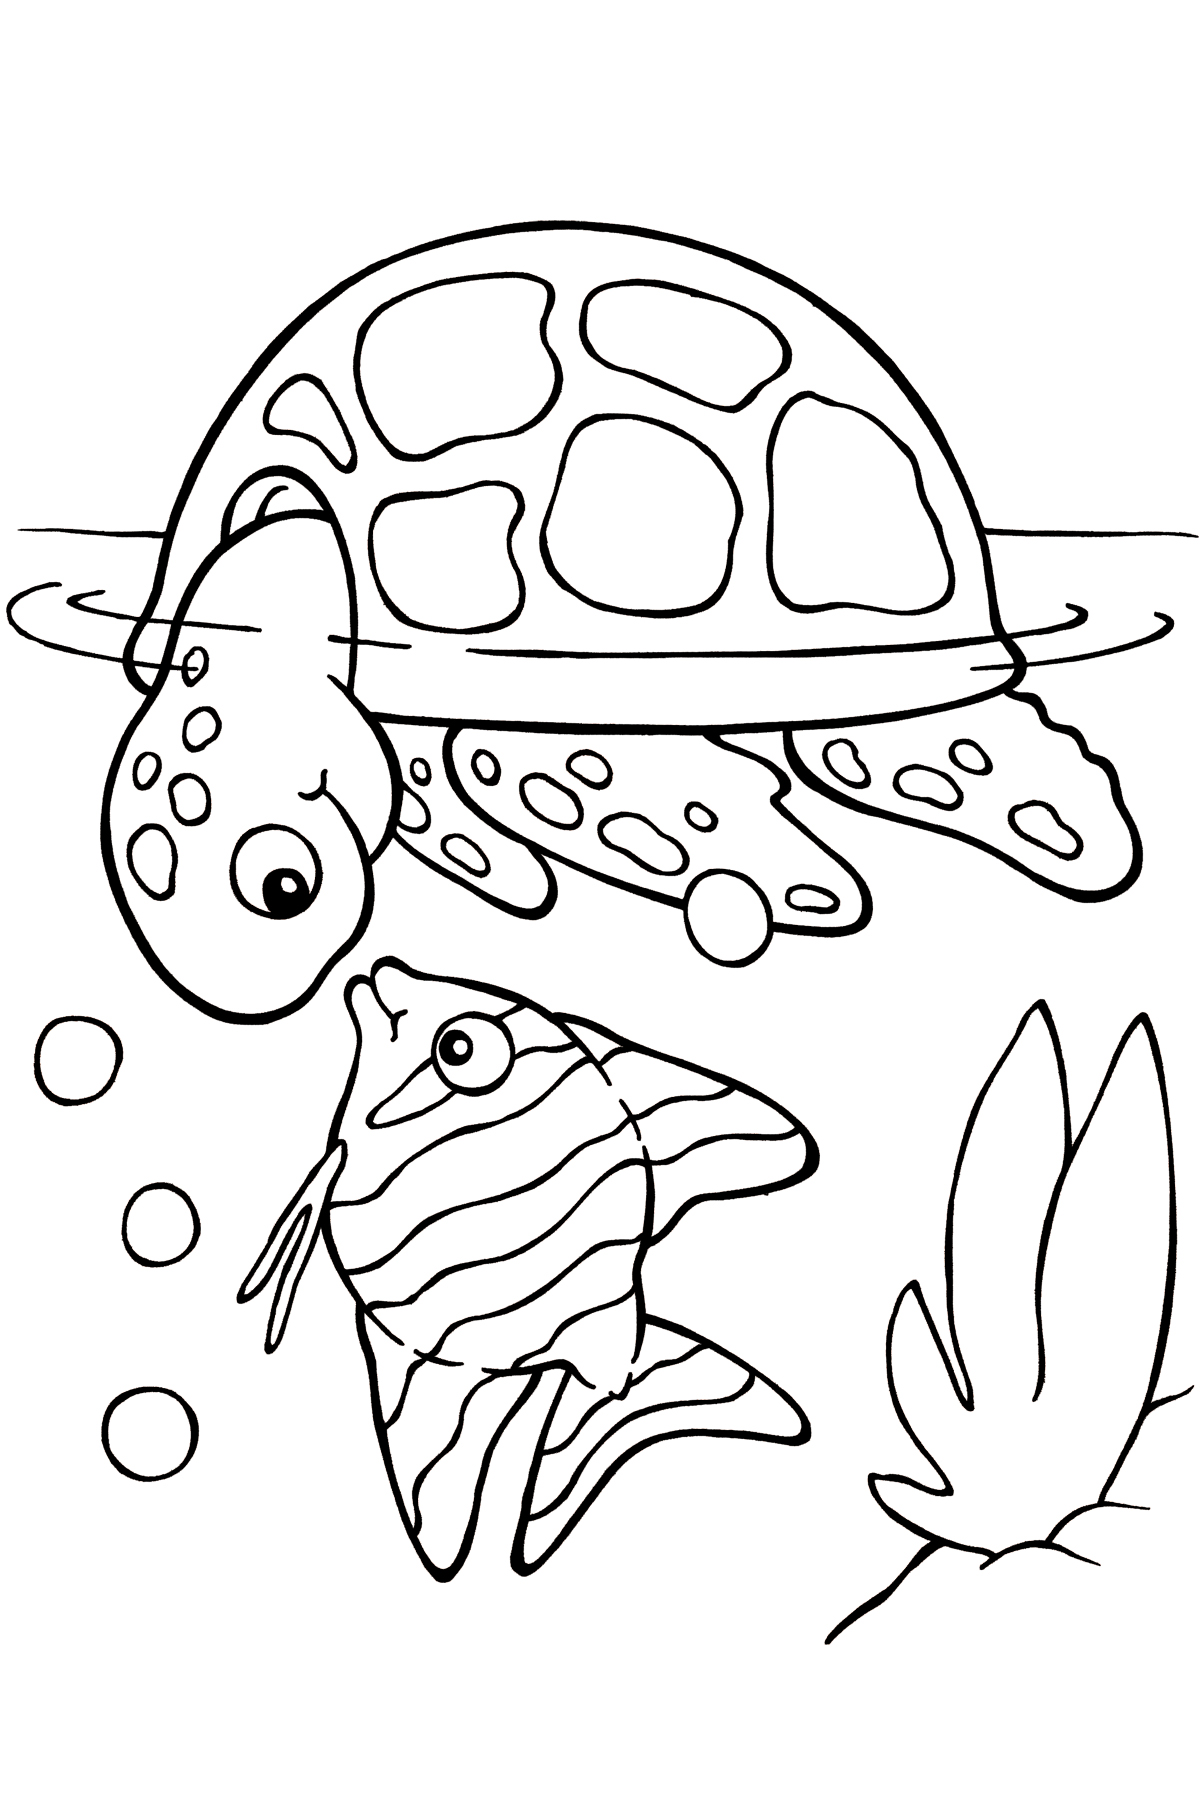 Sea turtle coloring pages to download and print for free for Summer pictures for kids to colour